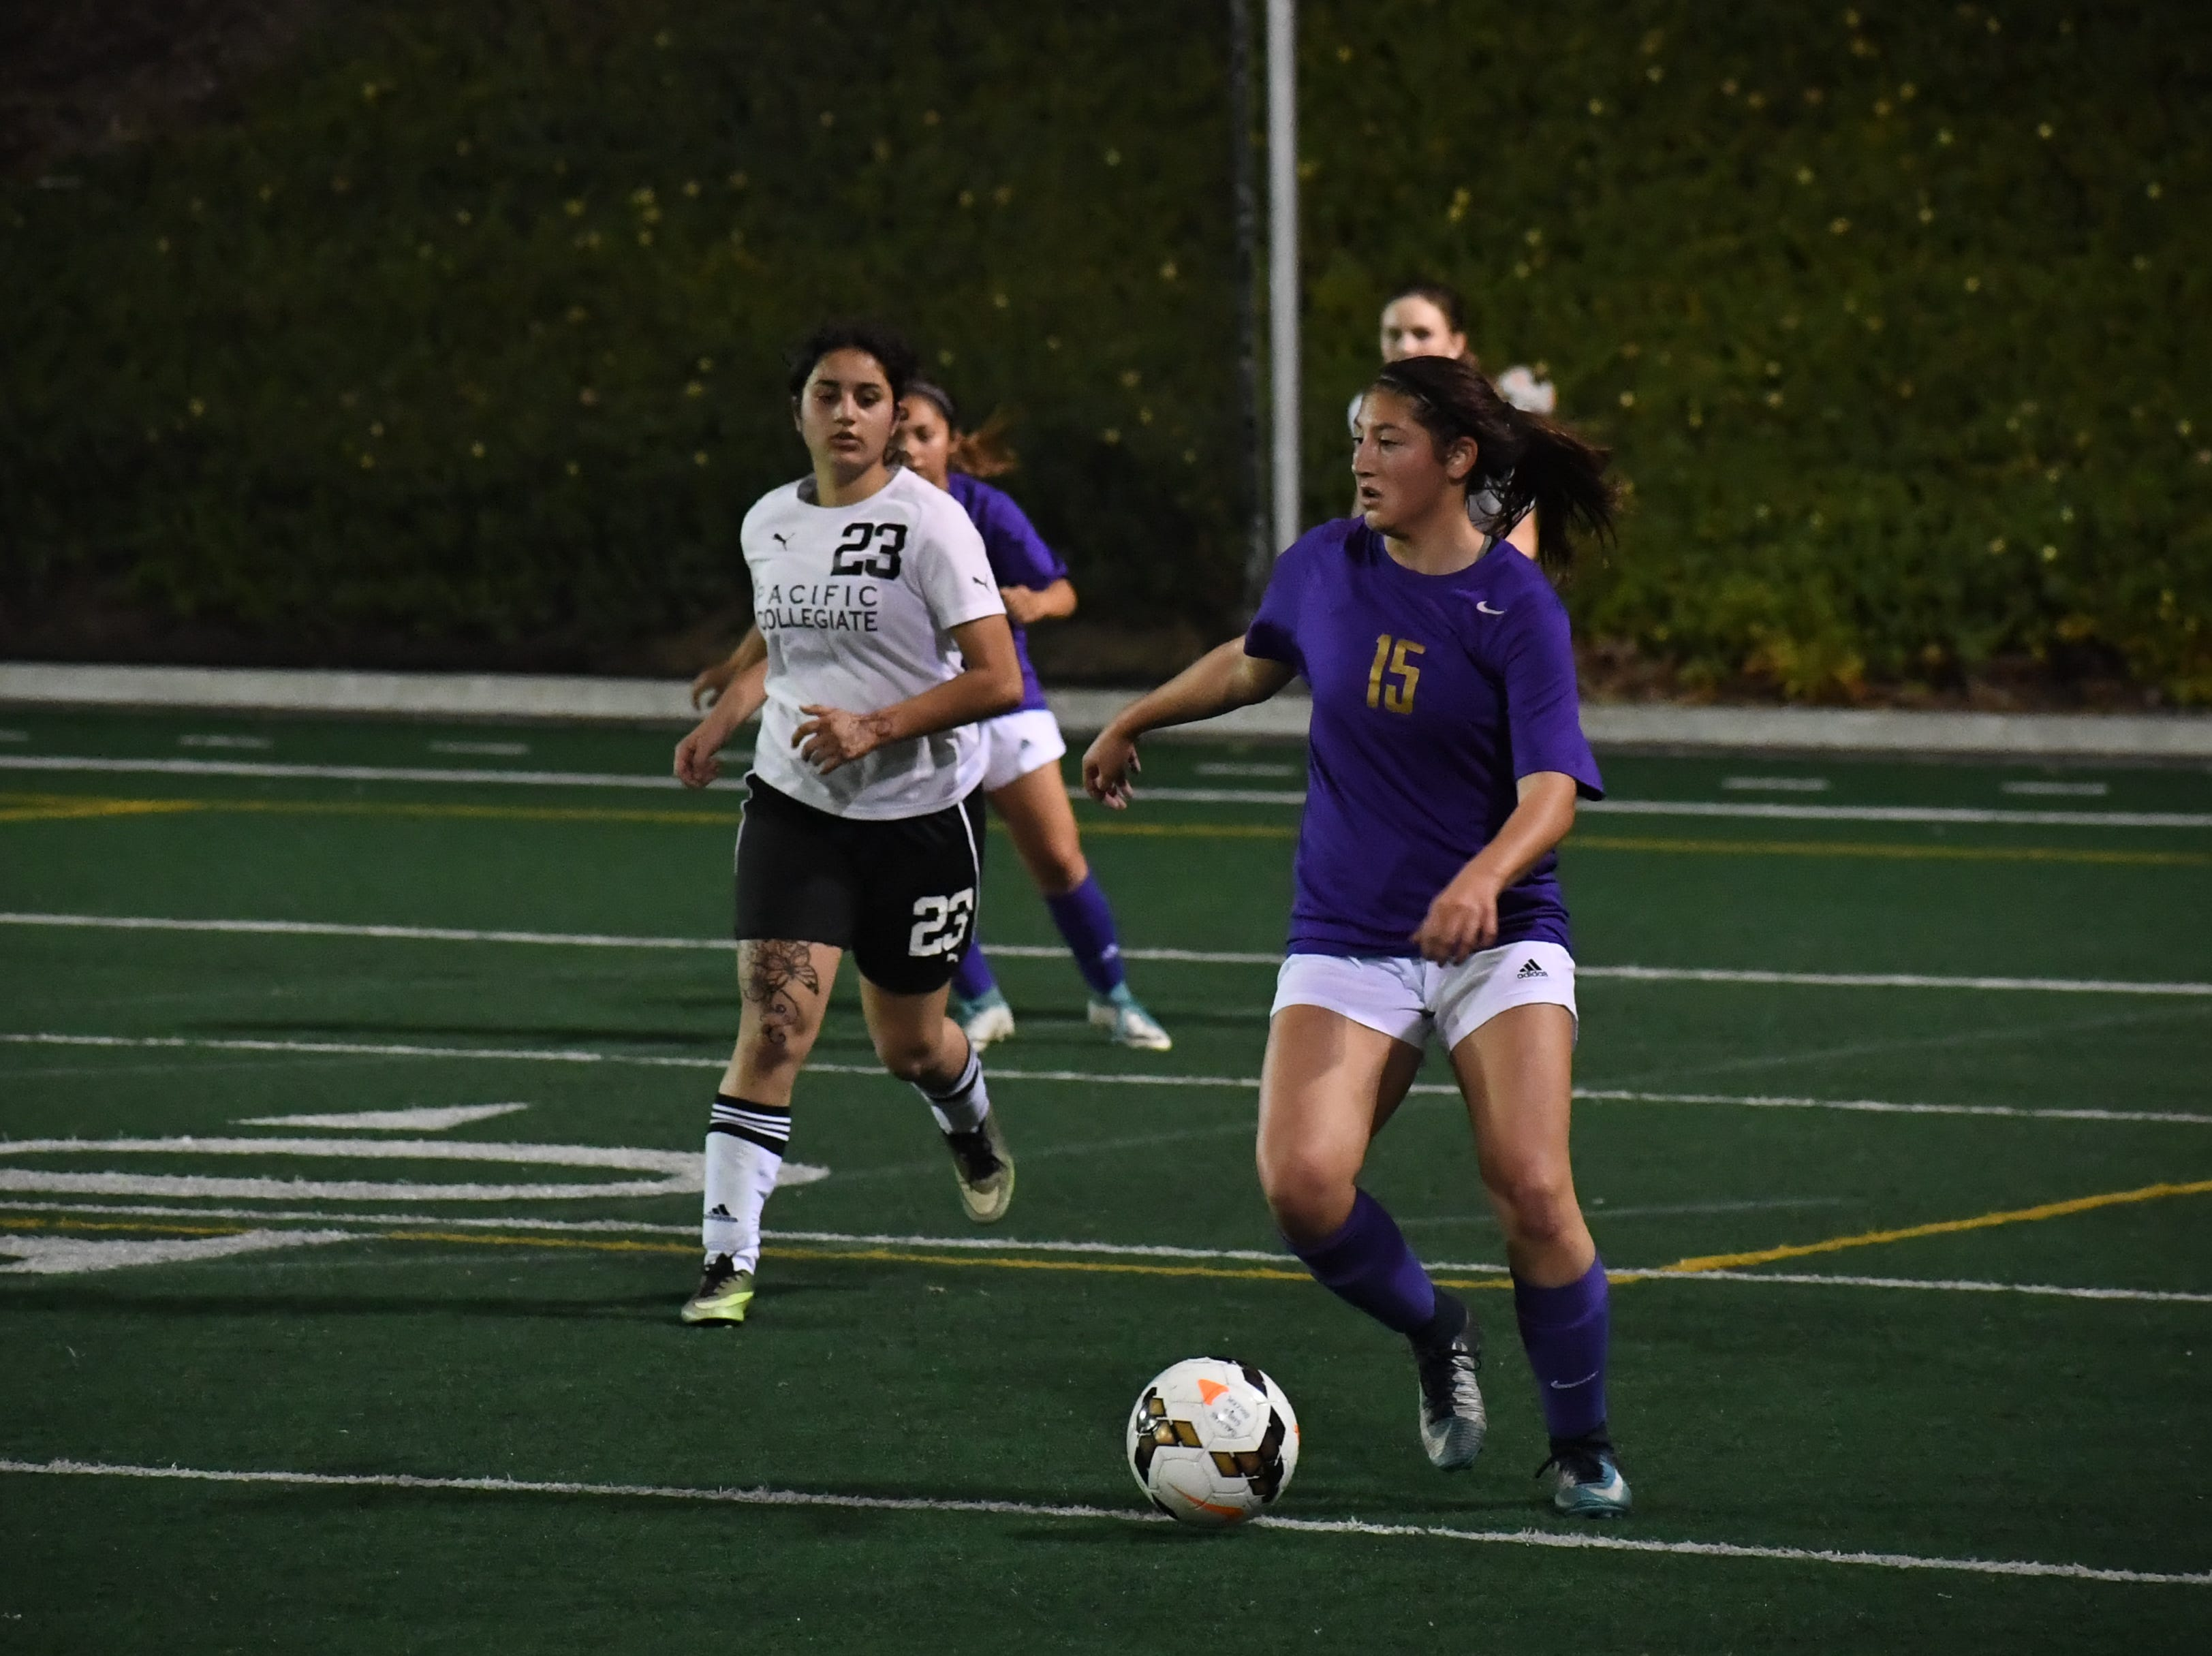 Junior Jordyn Magno (15) looks to pass after corralling a throw-in.